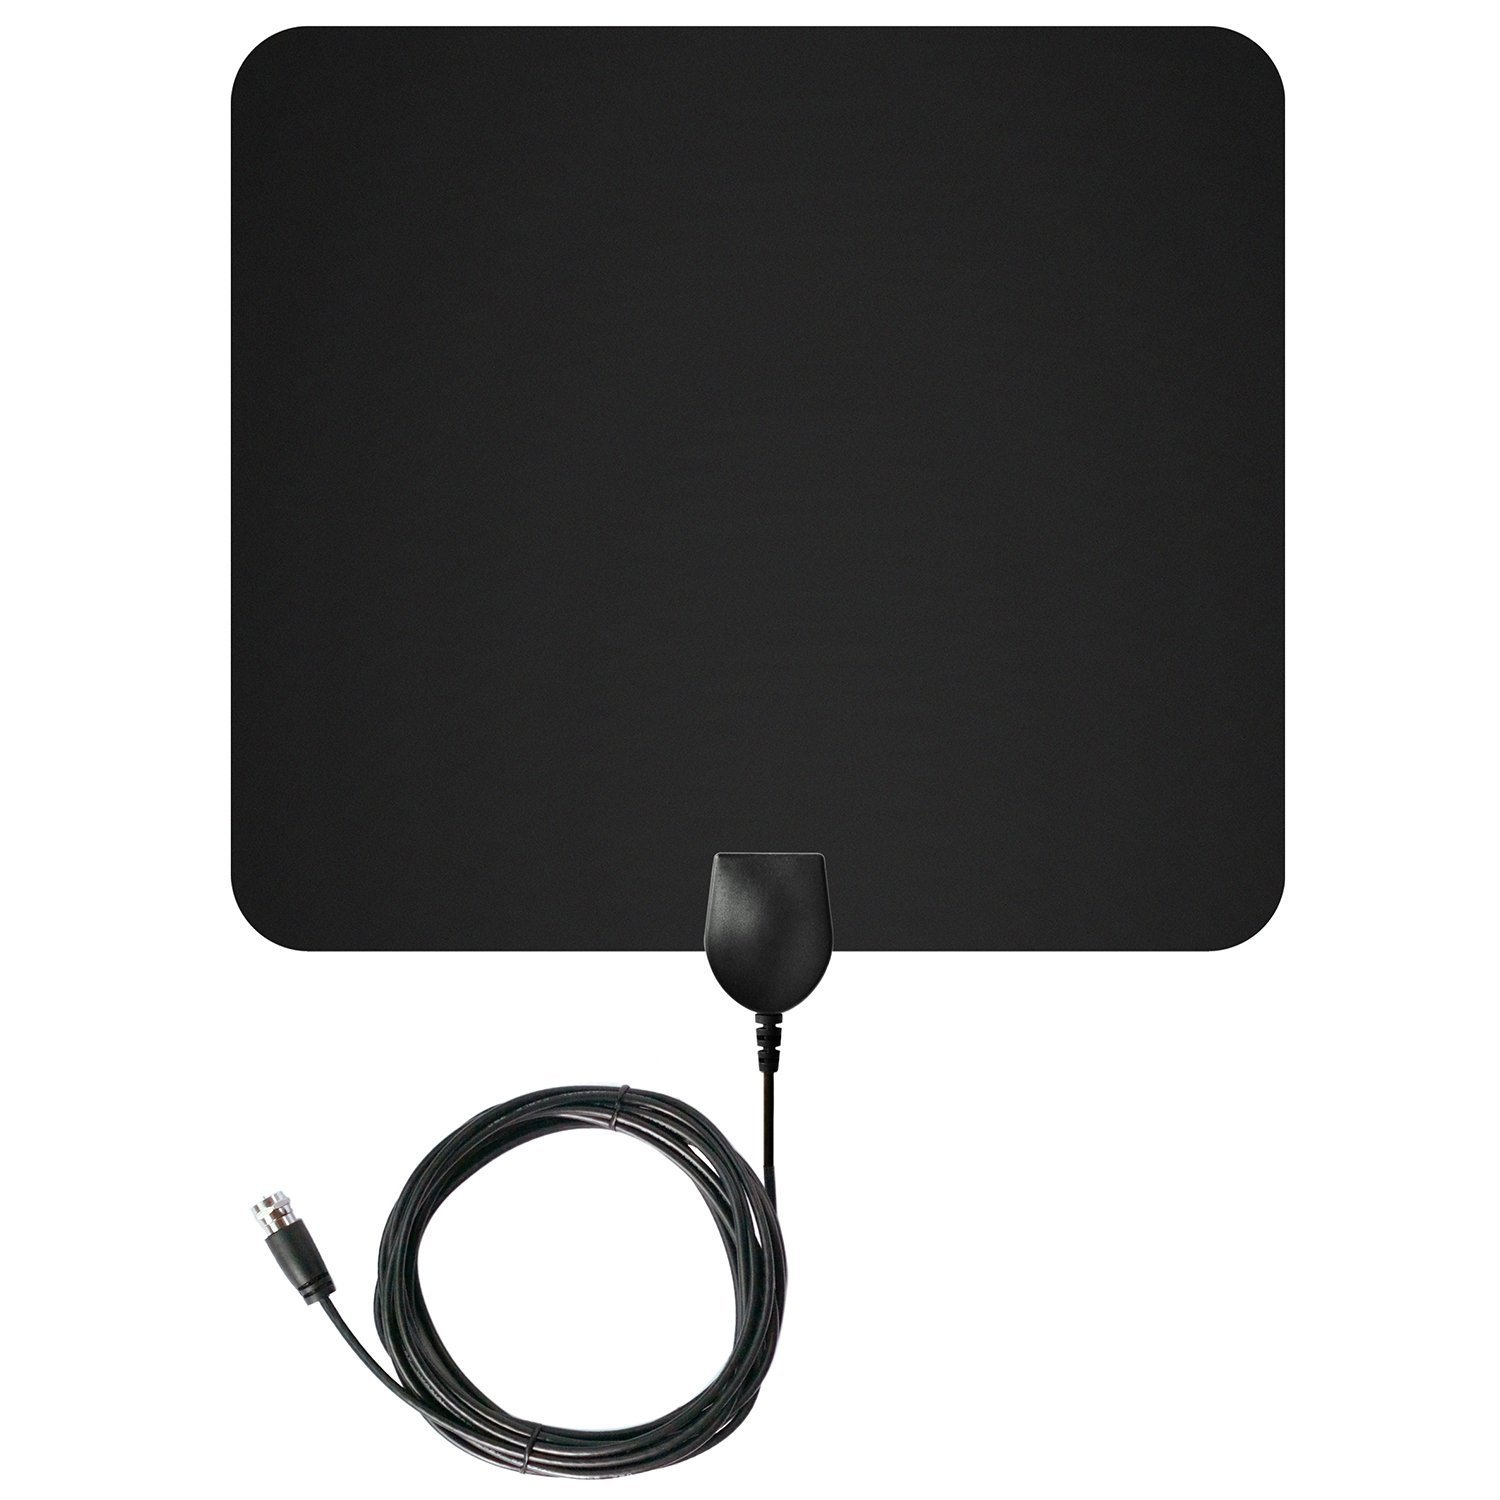 The Best HDTV Antenna 4